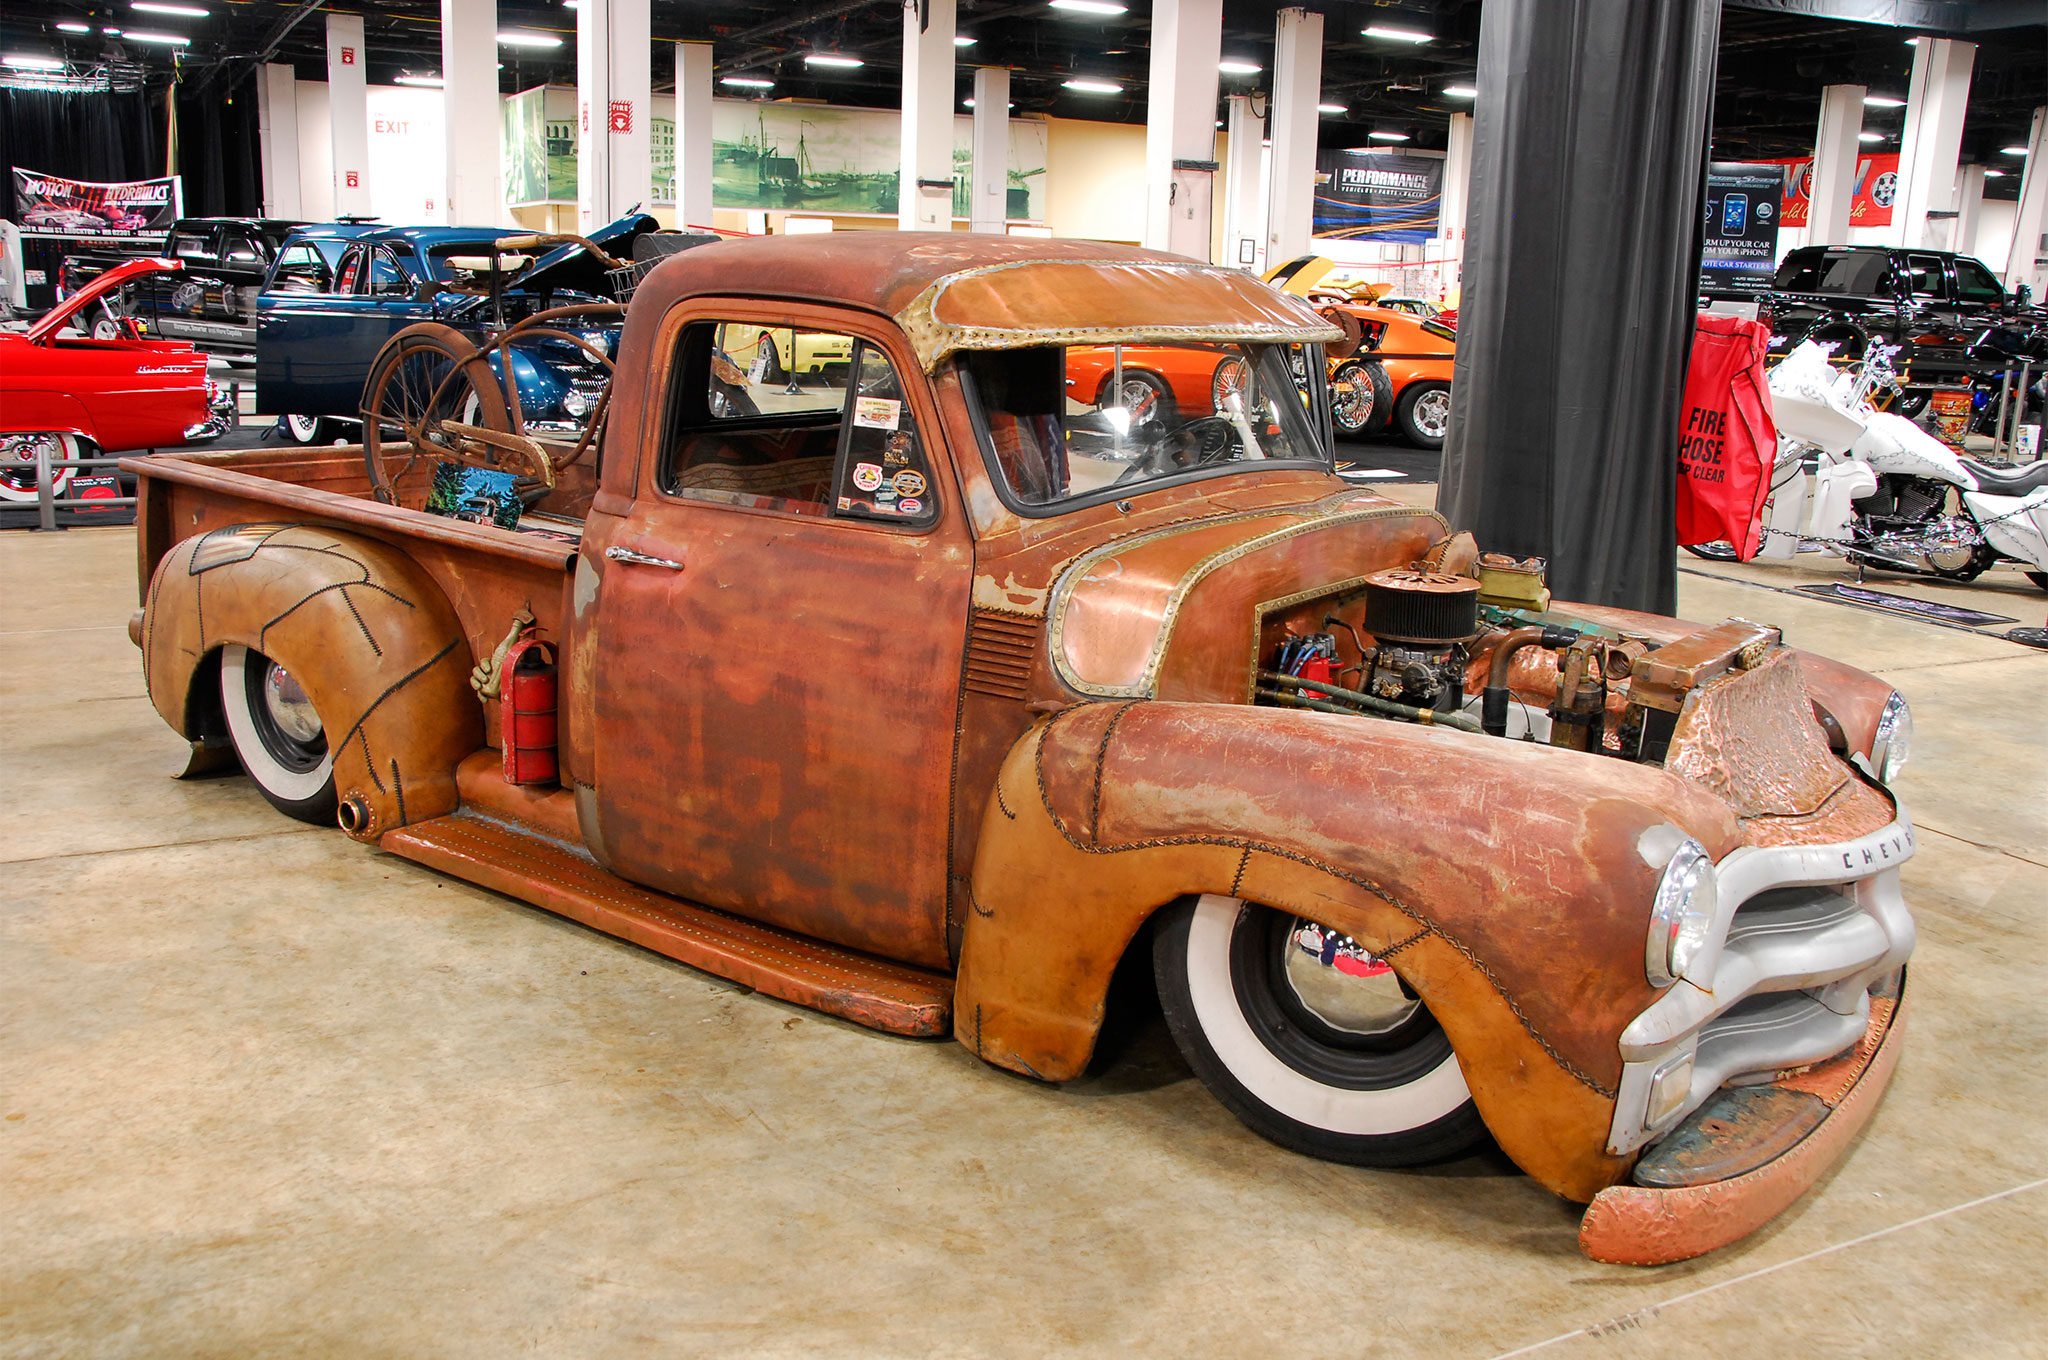 Craig Dolan's 1954 Chevy hauler was a real crowd-pleaser with its ground-scraping stance, body accented in leather and copper, vintage bike in the bed, and Chevy small-block power.